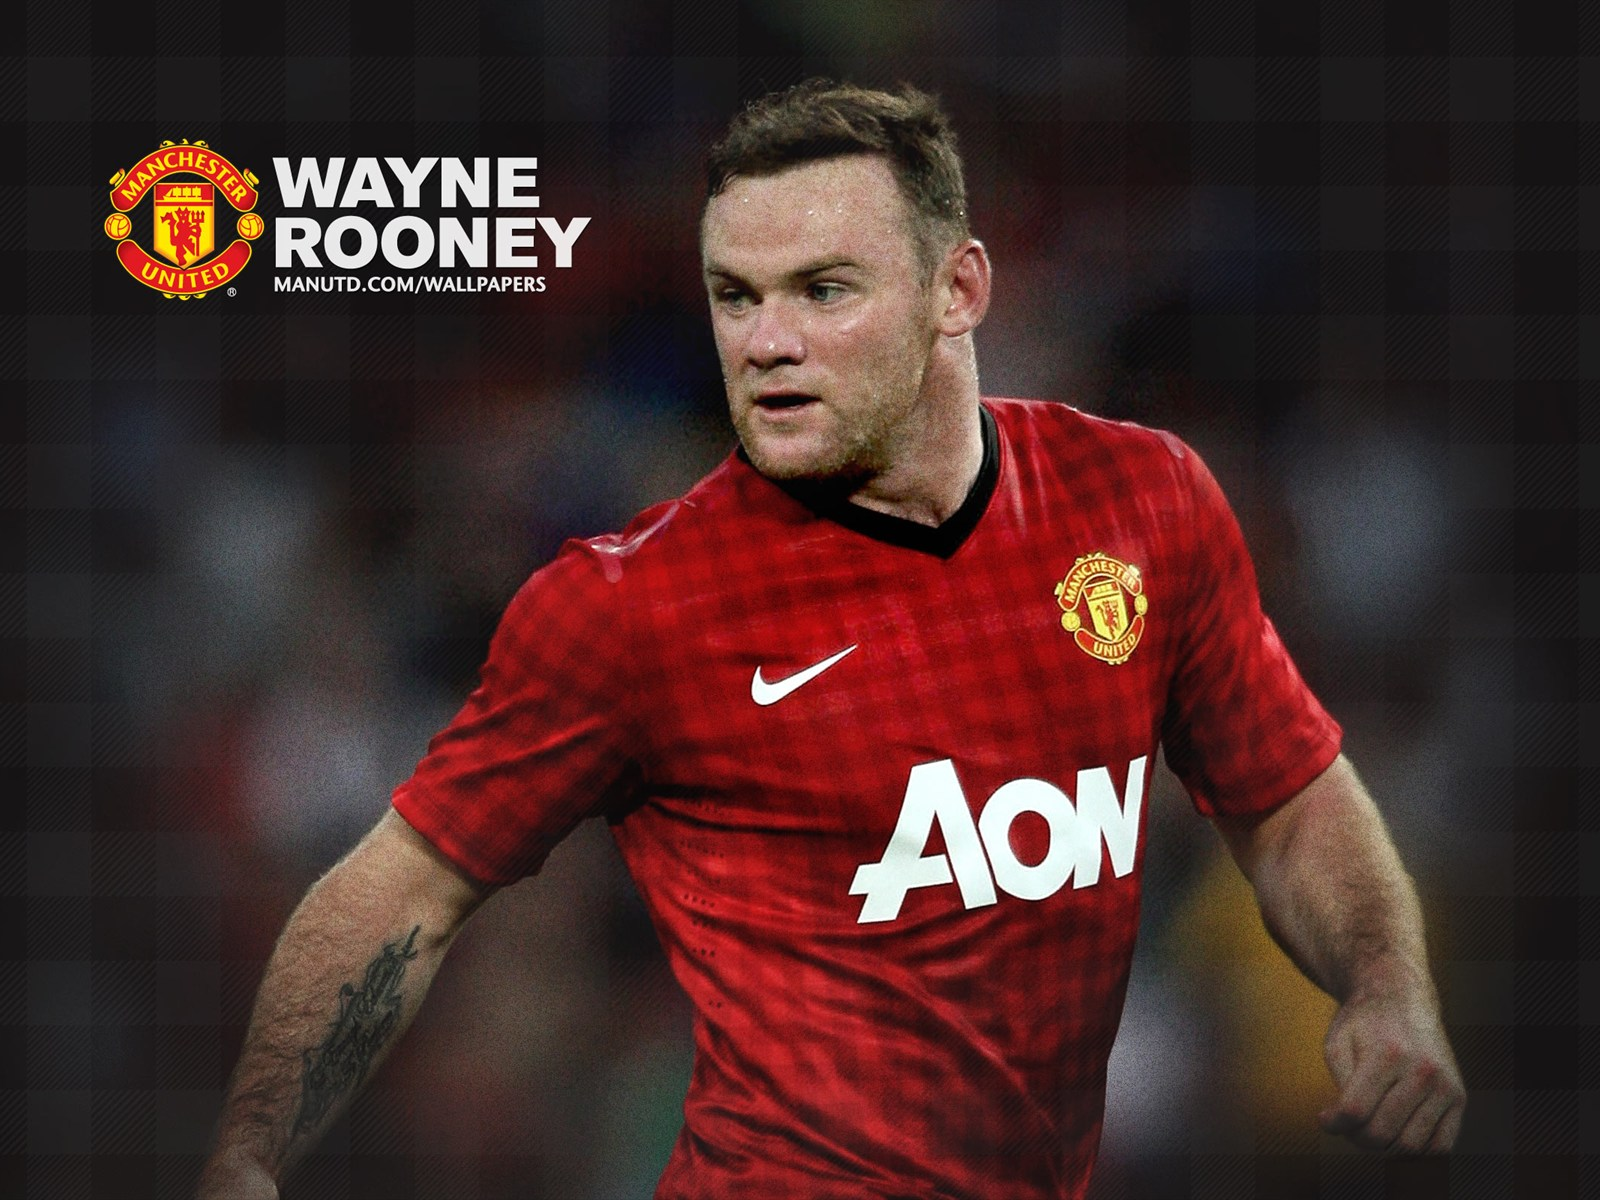 Wayne Rooney 10 Wayne Rooney Pictures Wallpaper Manchester United Wallpapers